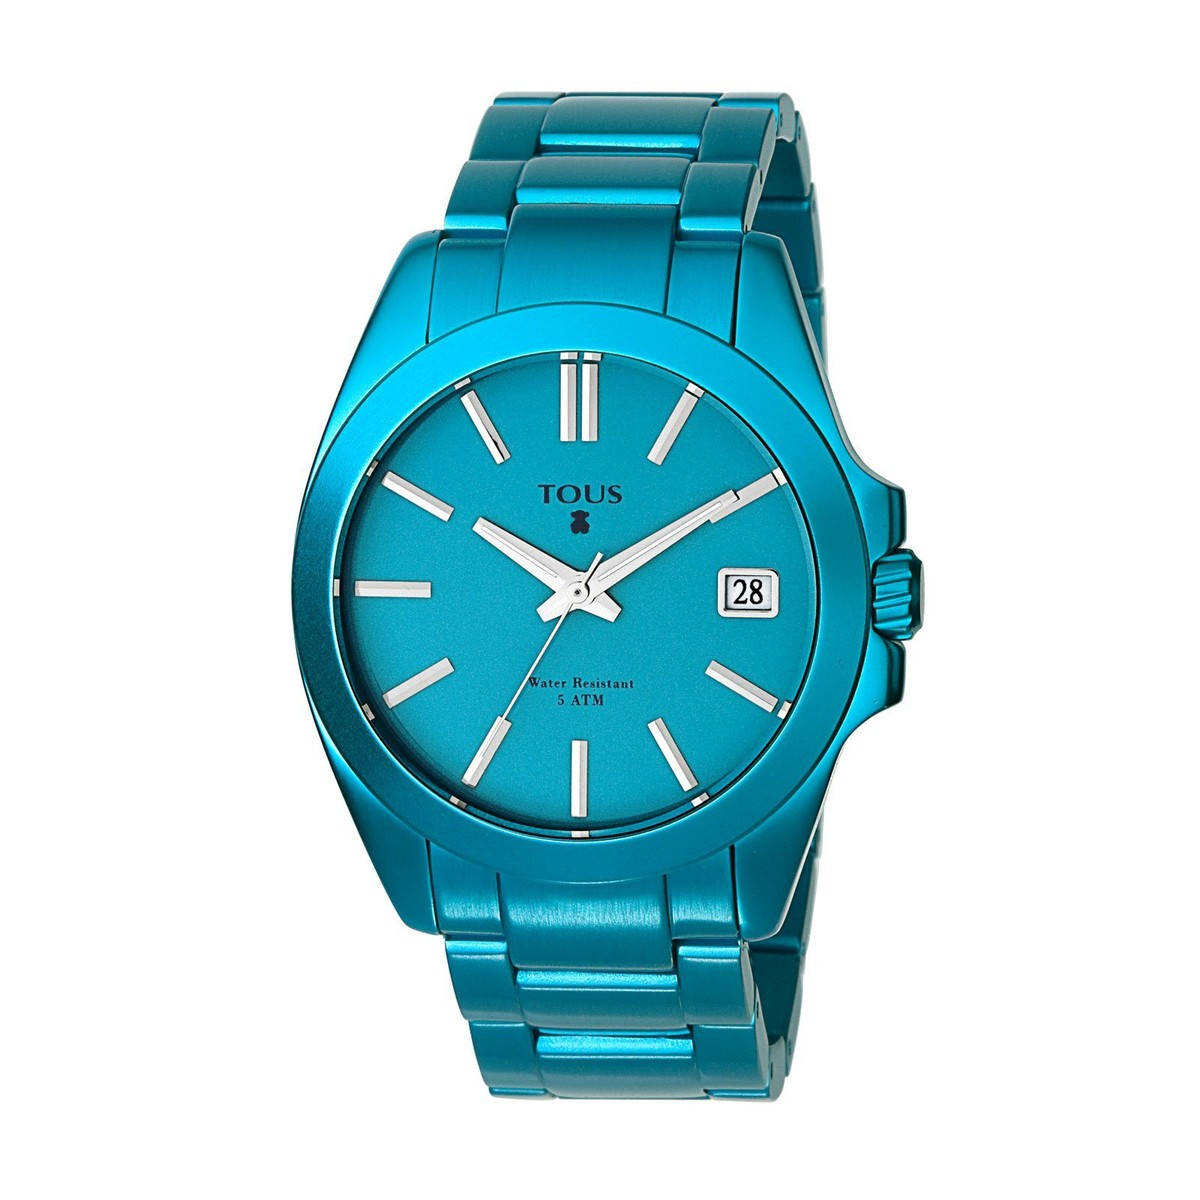 Turquoise anodized Aluminum Drive Watch